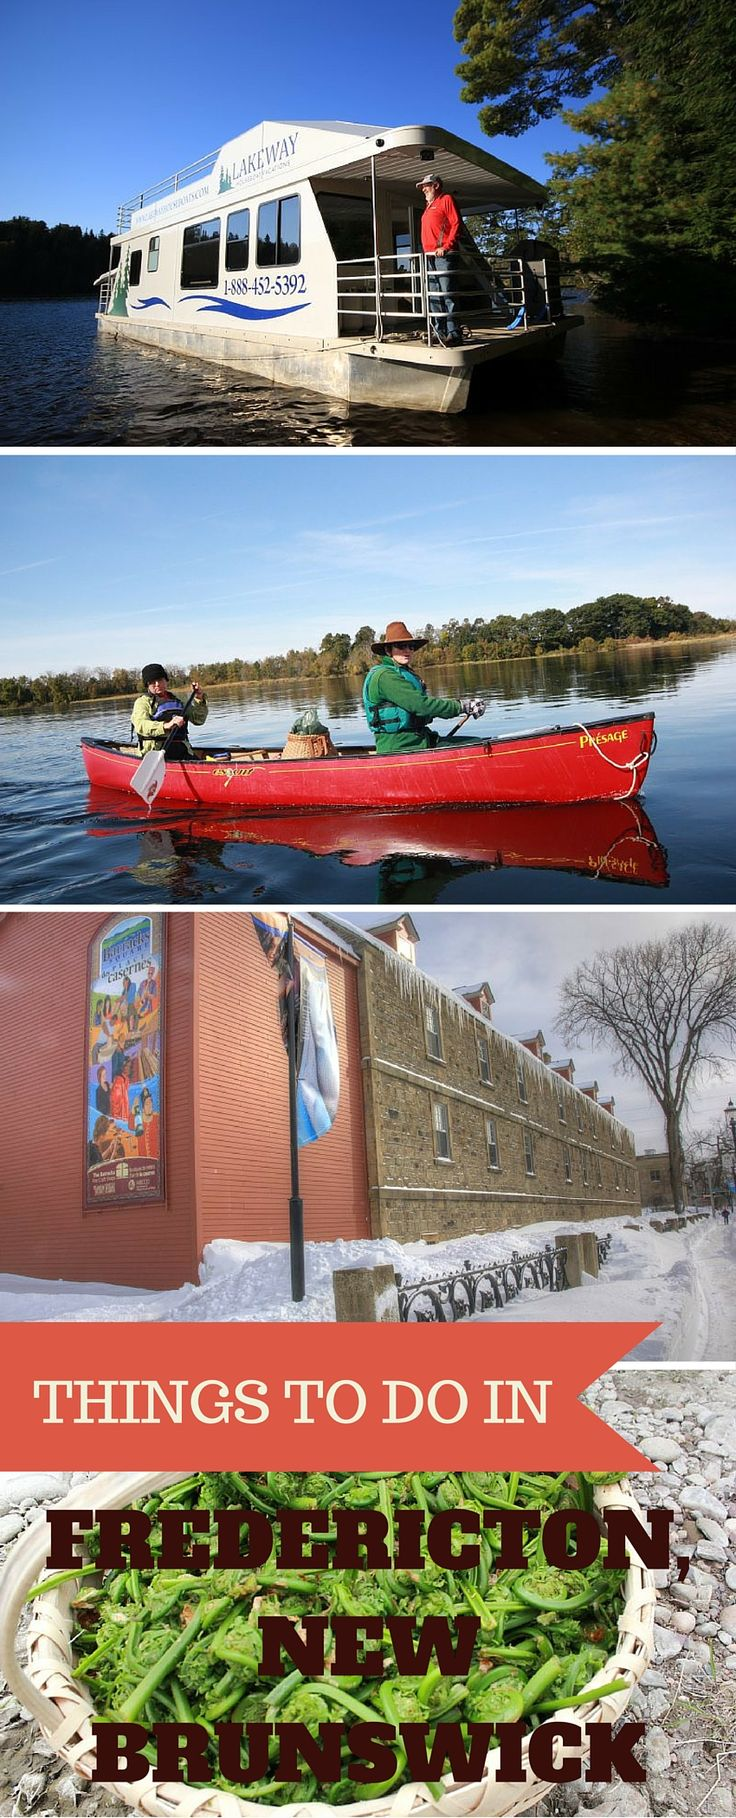 New things to do in Fredericton. Try it yourself!